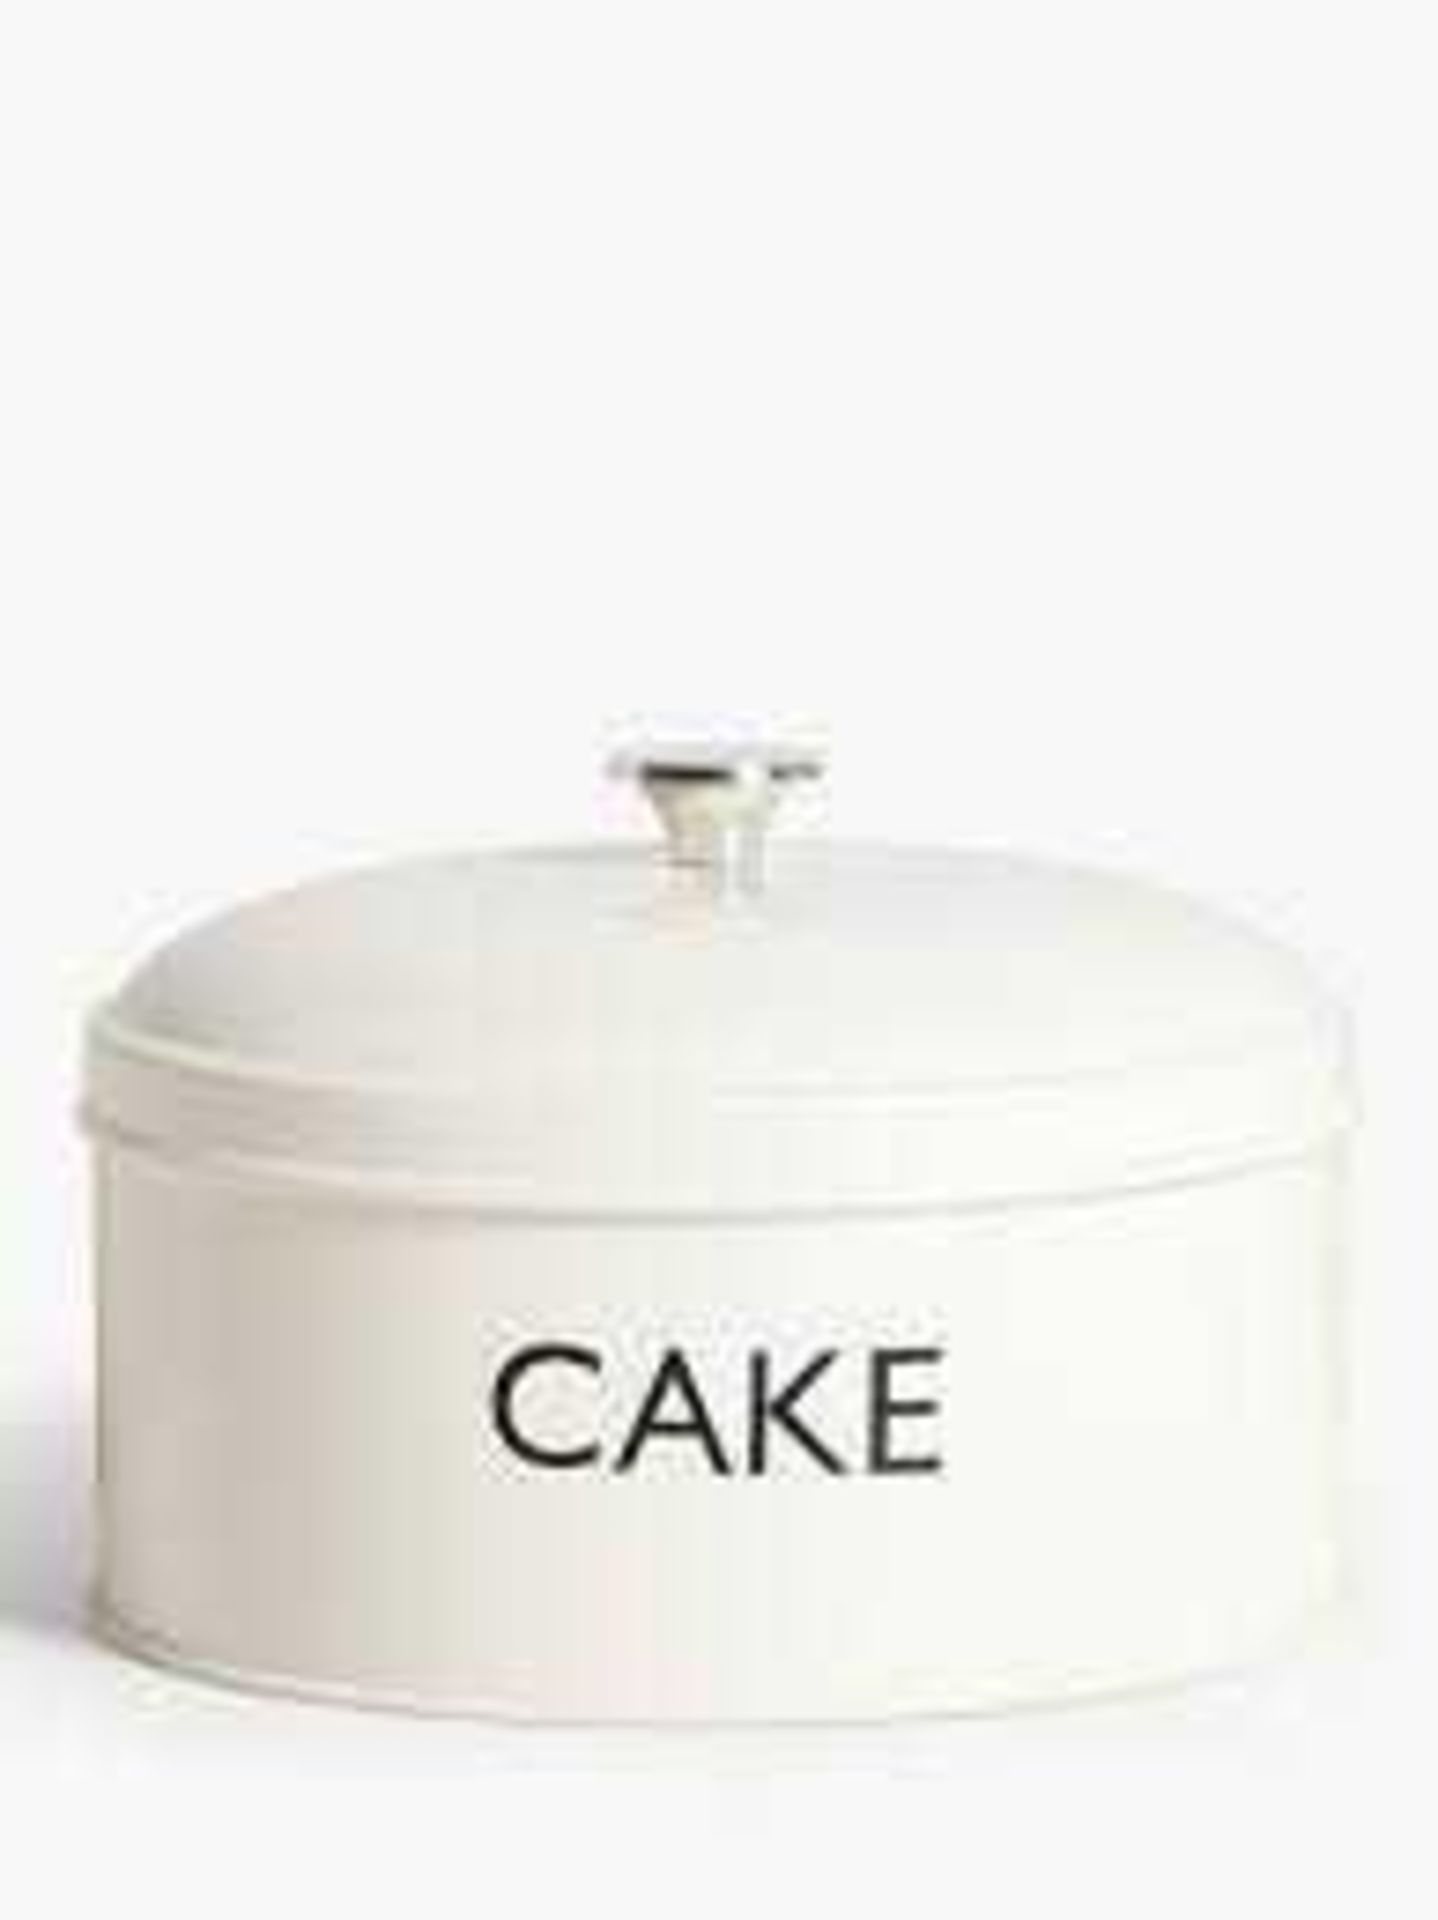 RRP £20 Each Assorted John Lewis Kitchen Items To Include Animal Cake Tin And 6 Bottle Honeycomb Win - Image 2 of 2